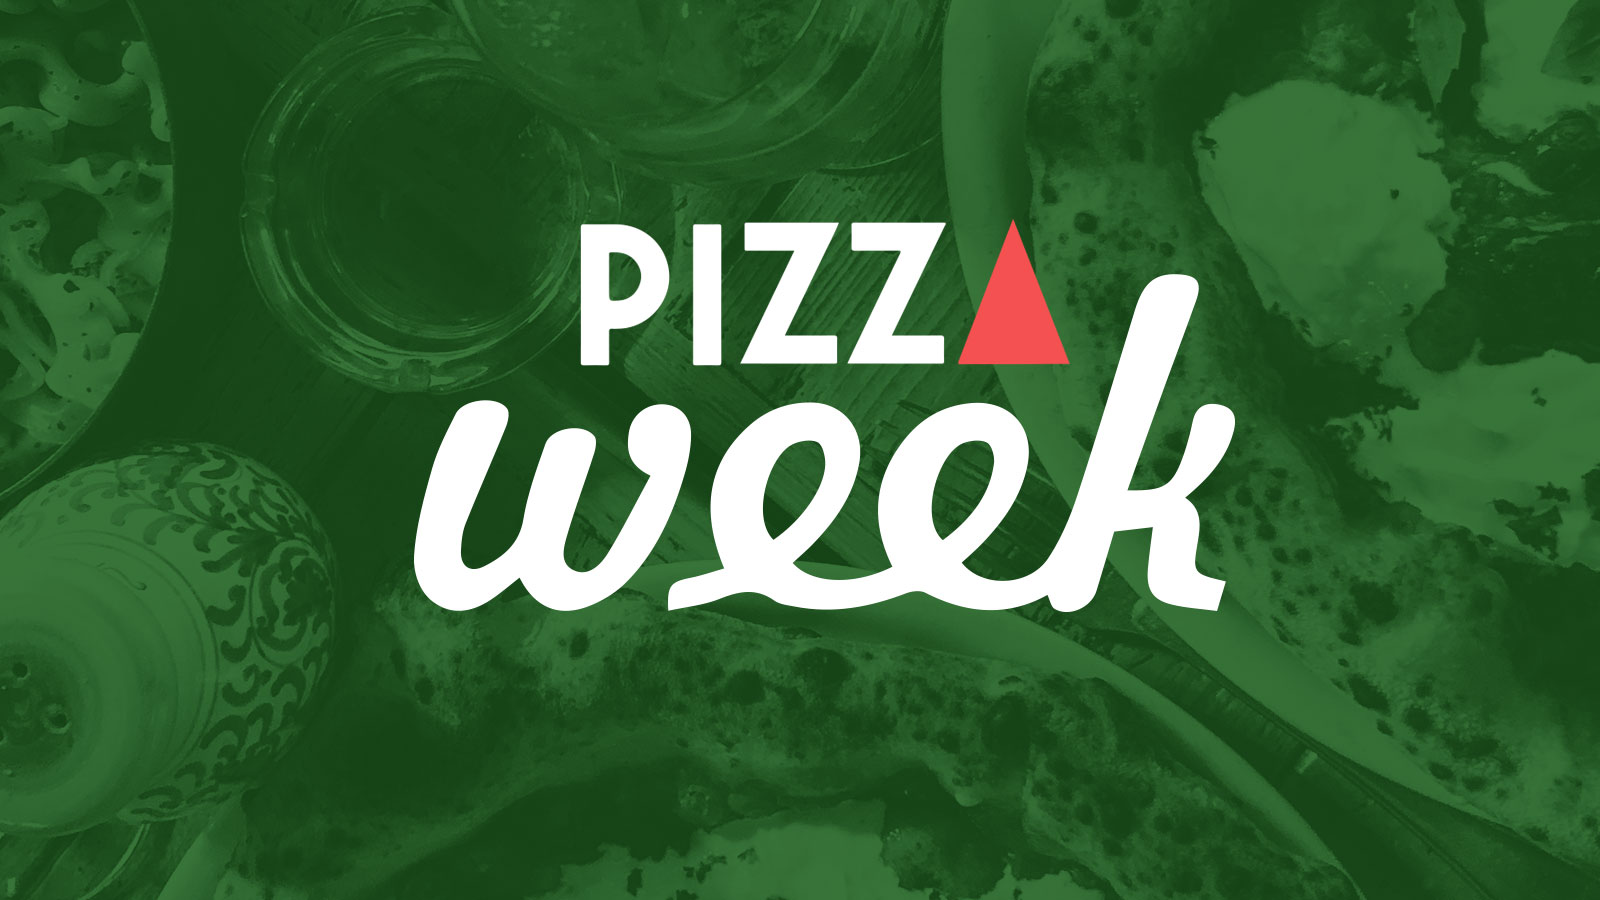 Pizza Week Panama